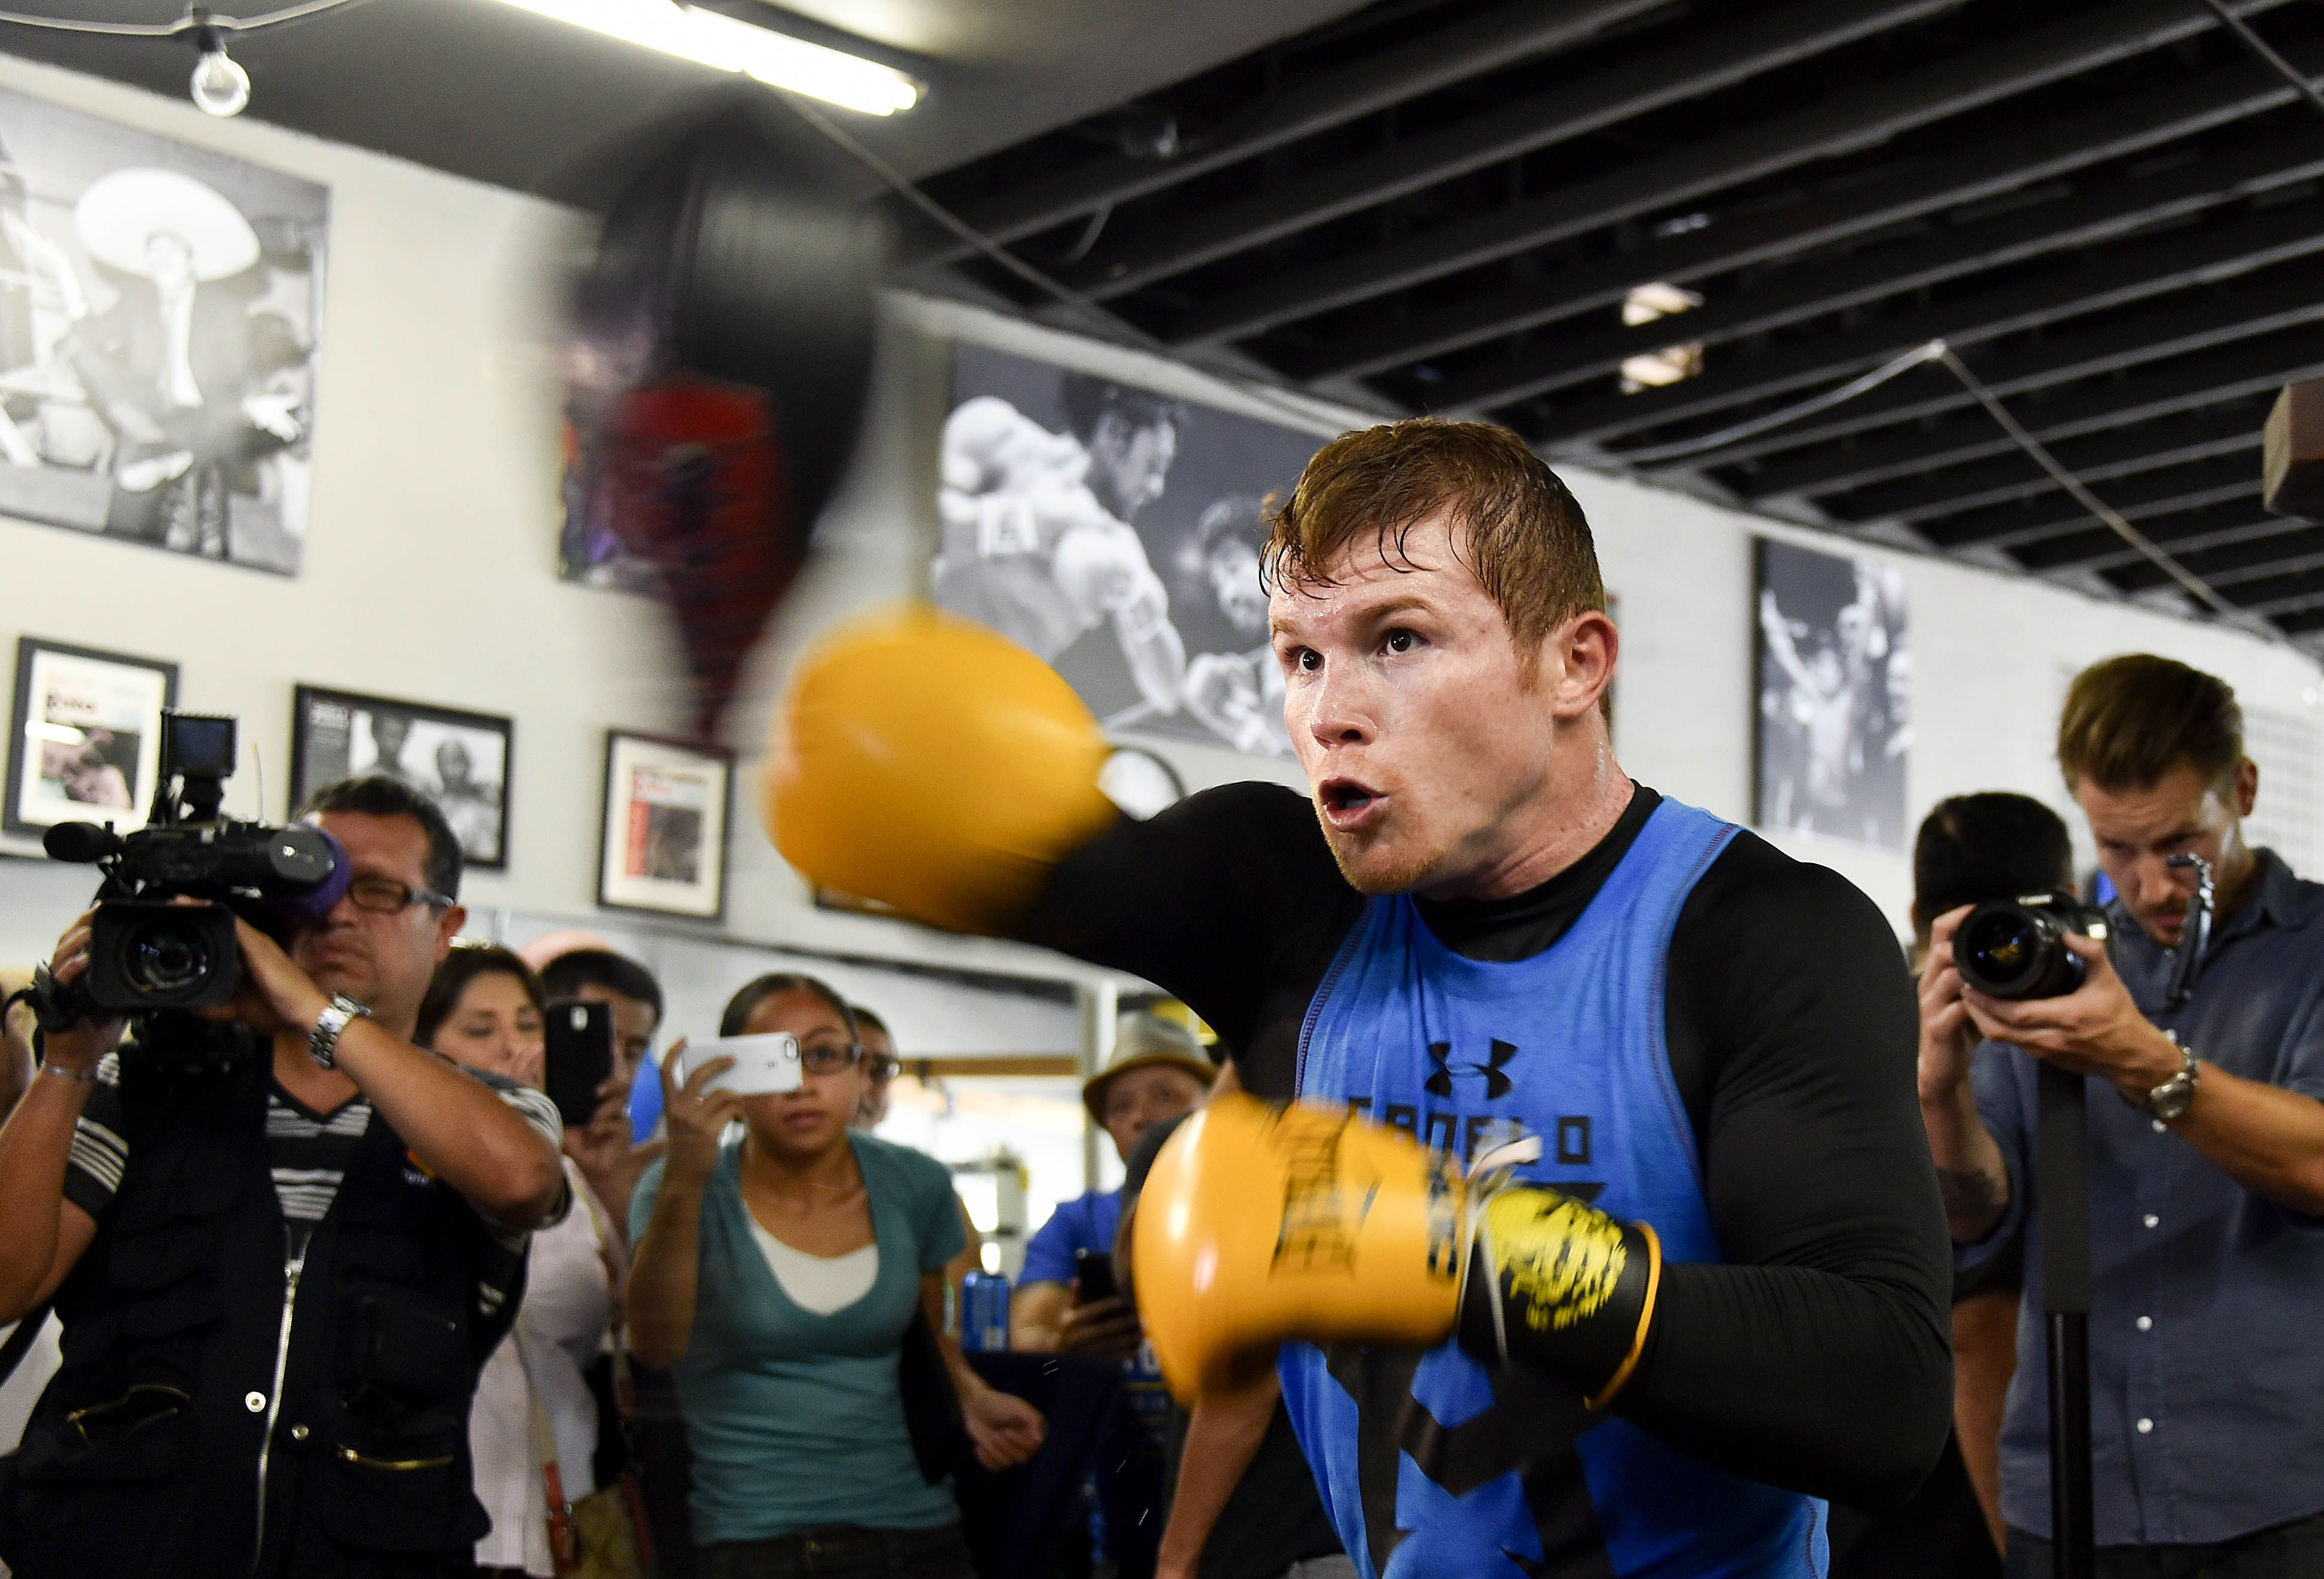 Mayweather and Pacquiao's Retirement Opens the Door for Canelo to Make the Boxing Big Bucks